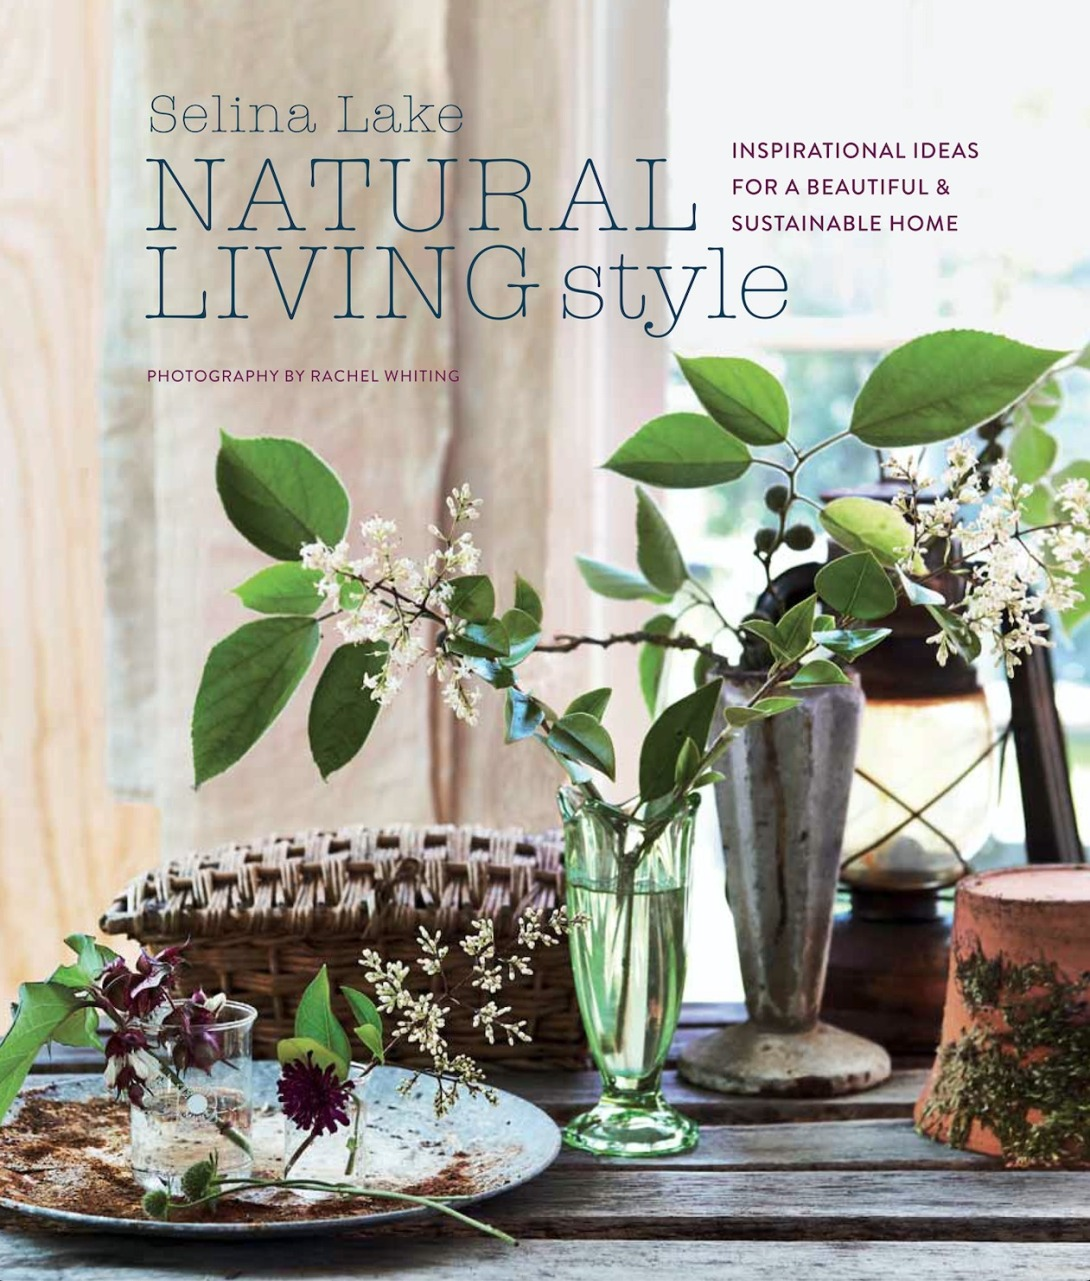 Natural Living Style by Selina Lake cover